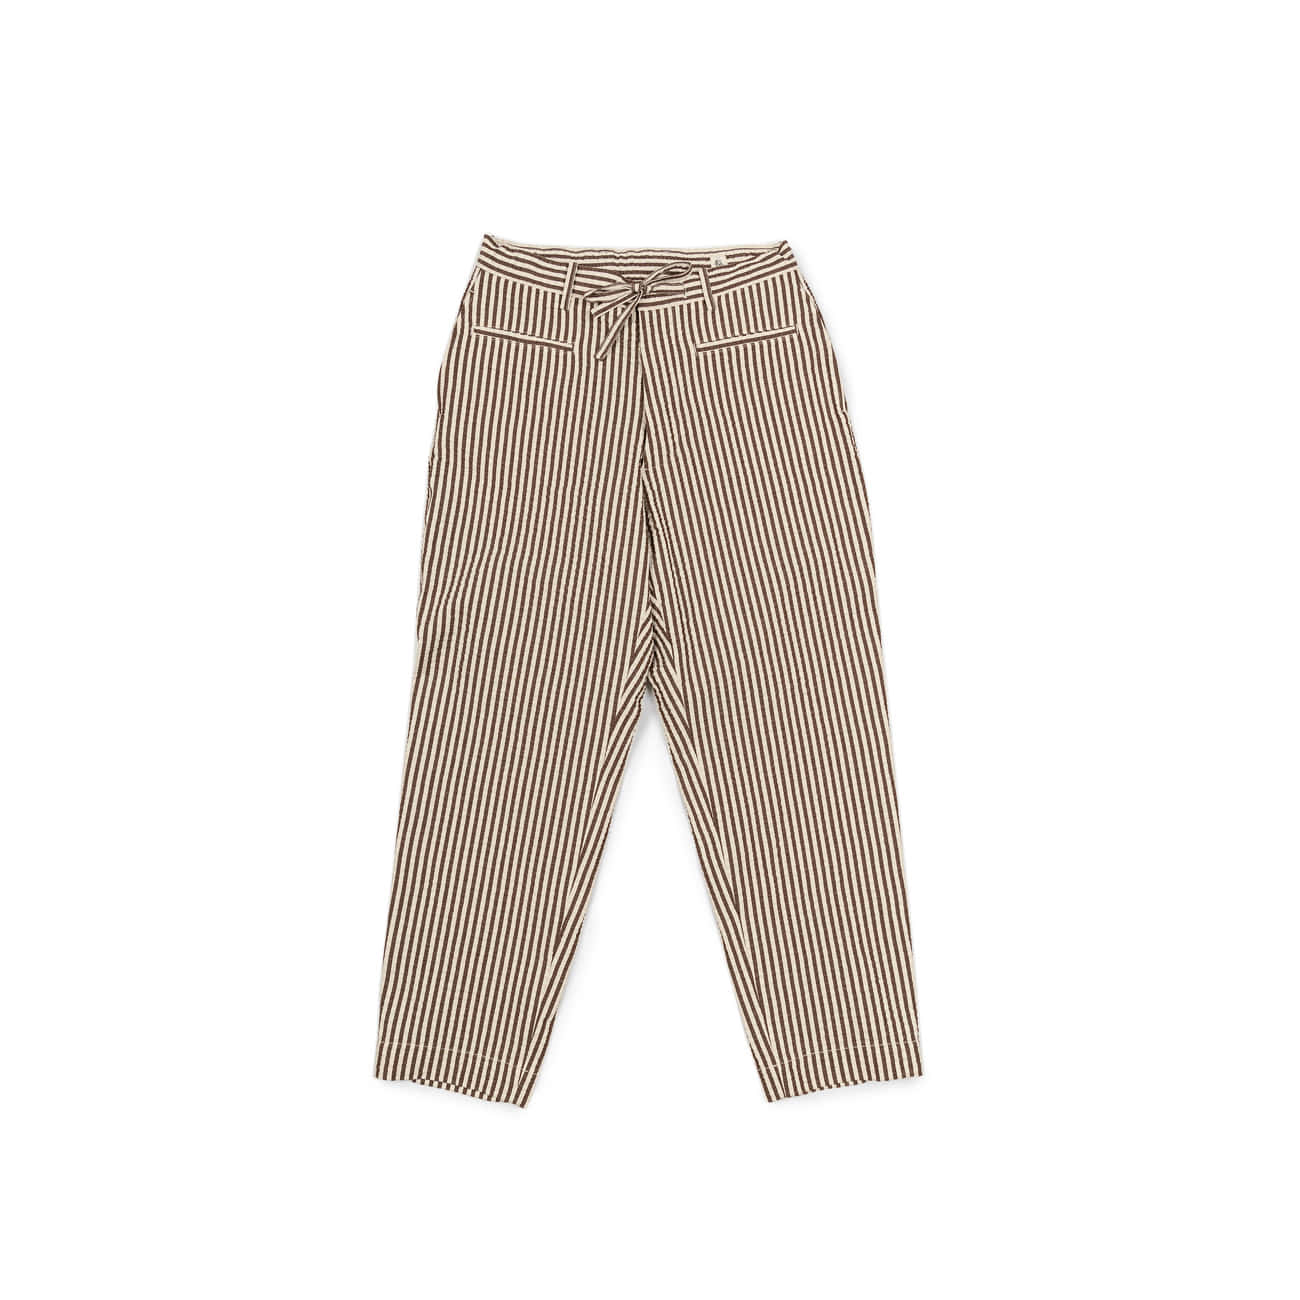 Traveller Trousers